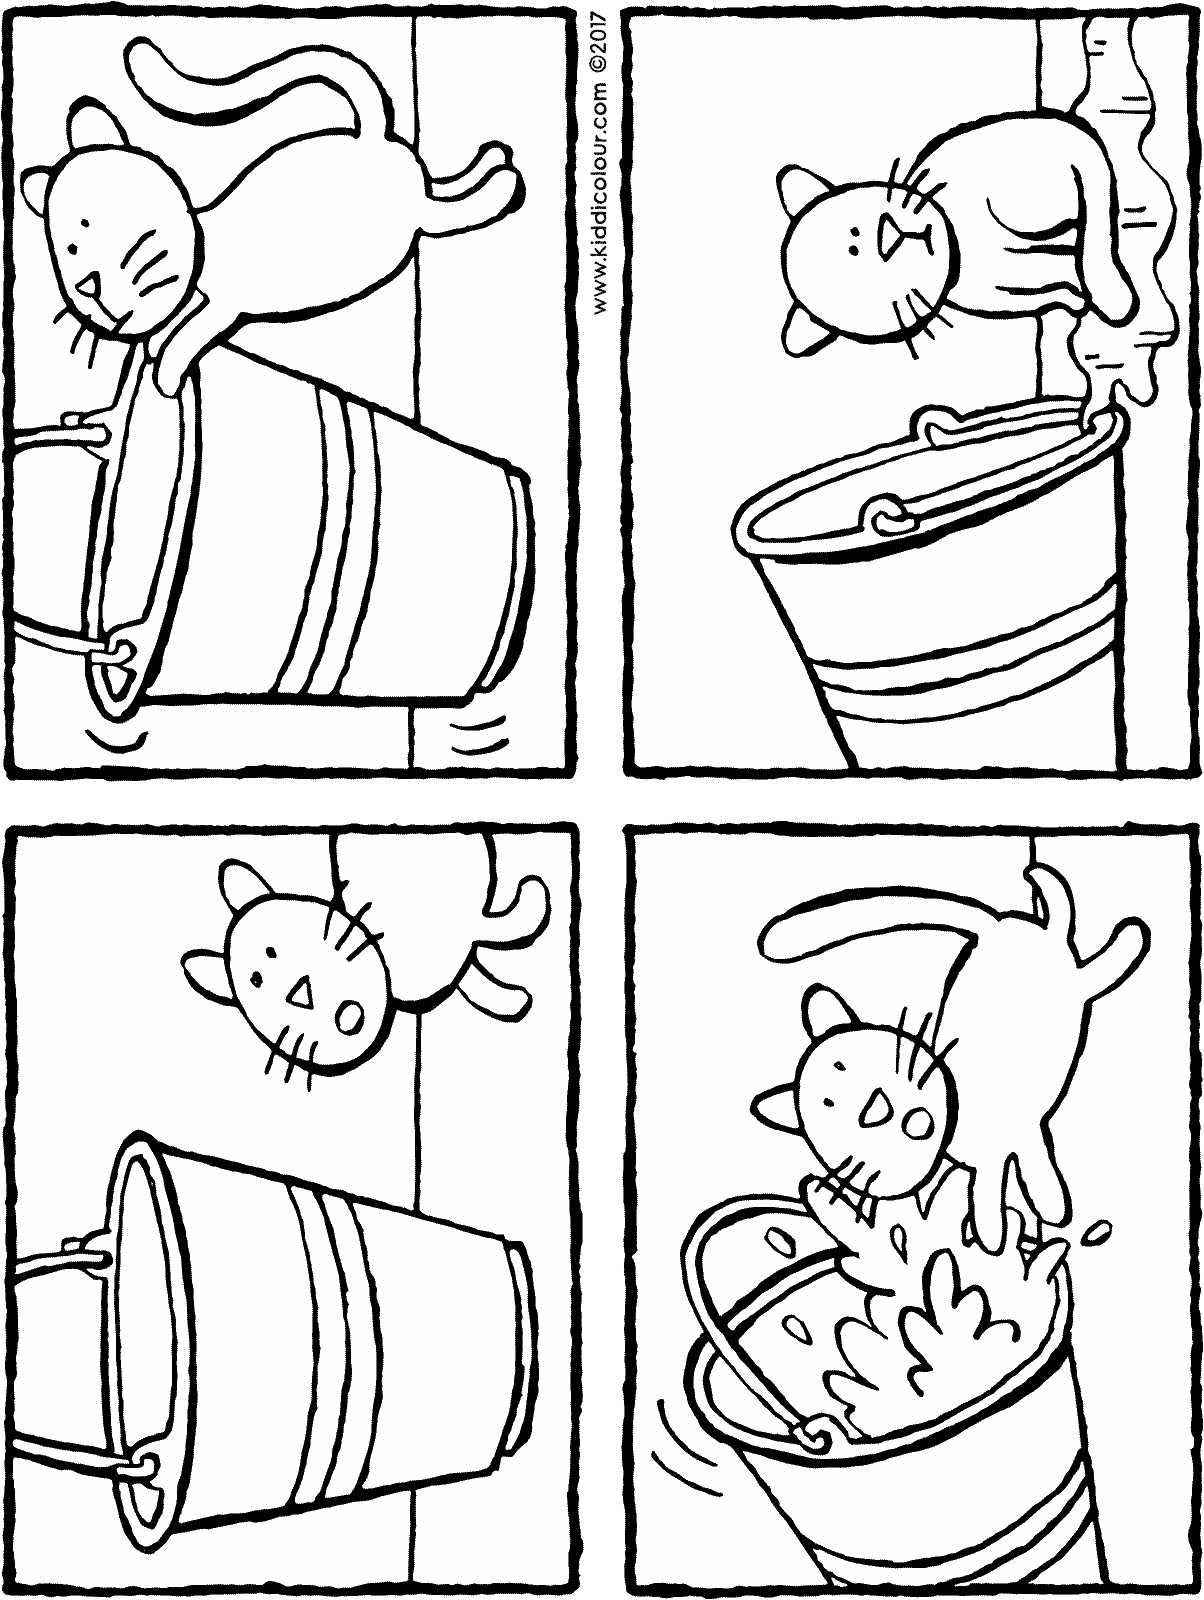 story bucket and cat colouring page drawing picture 01H